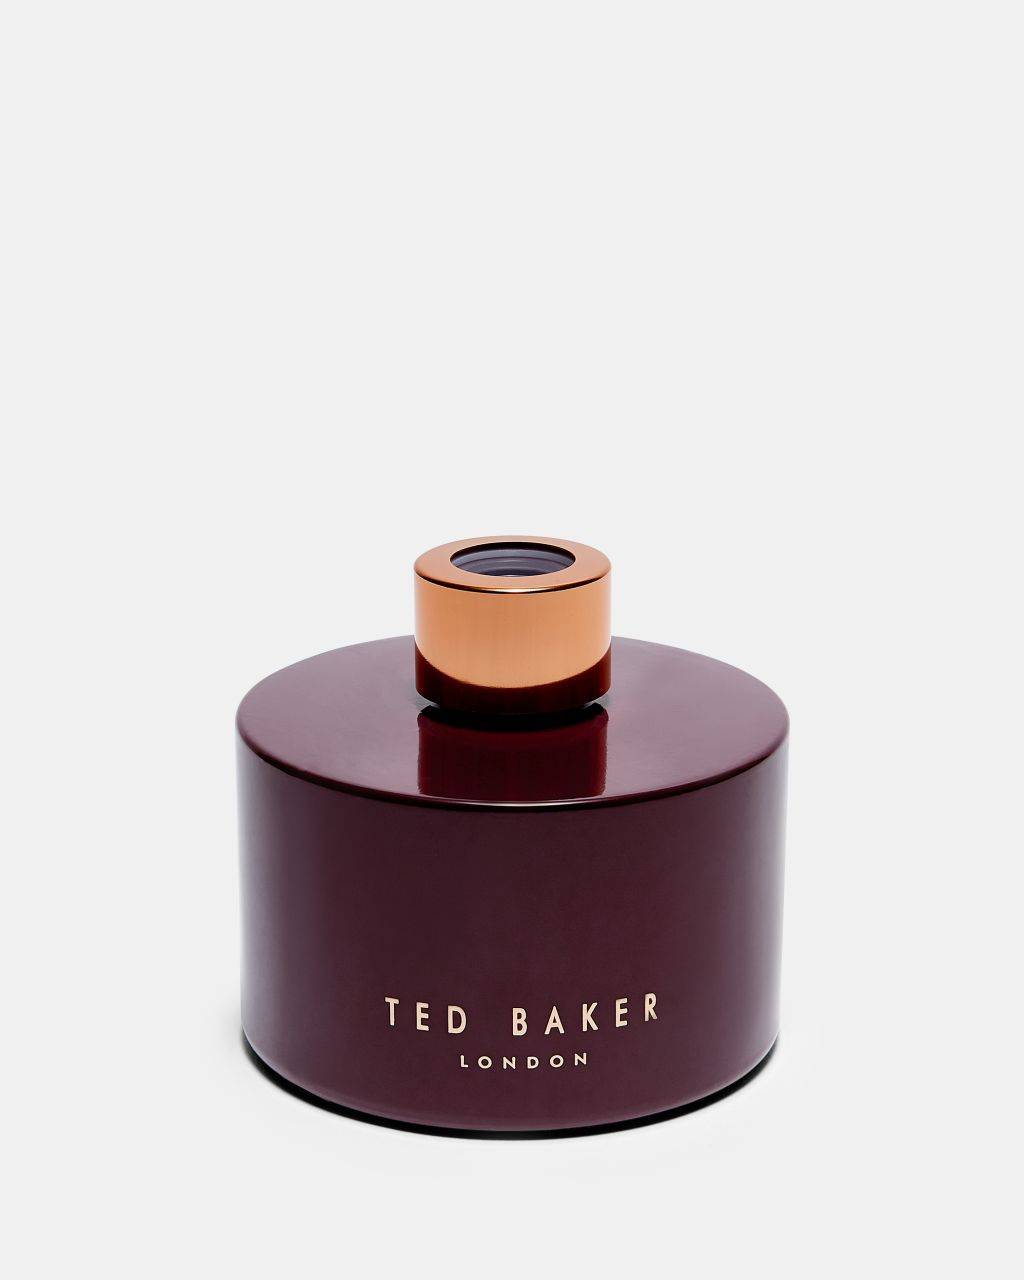 Ted Baker Pink Pepper And Cedarwood Diffuser  - Oxblood - Size: One Size